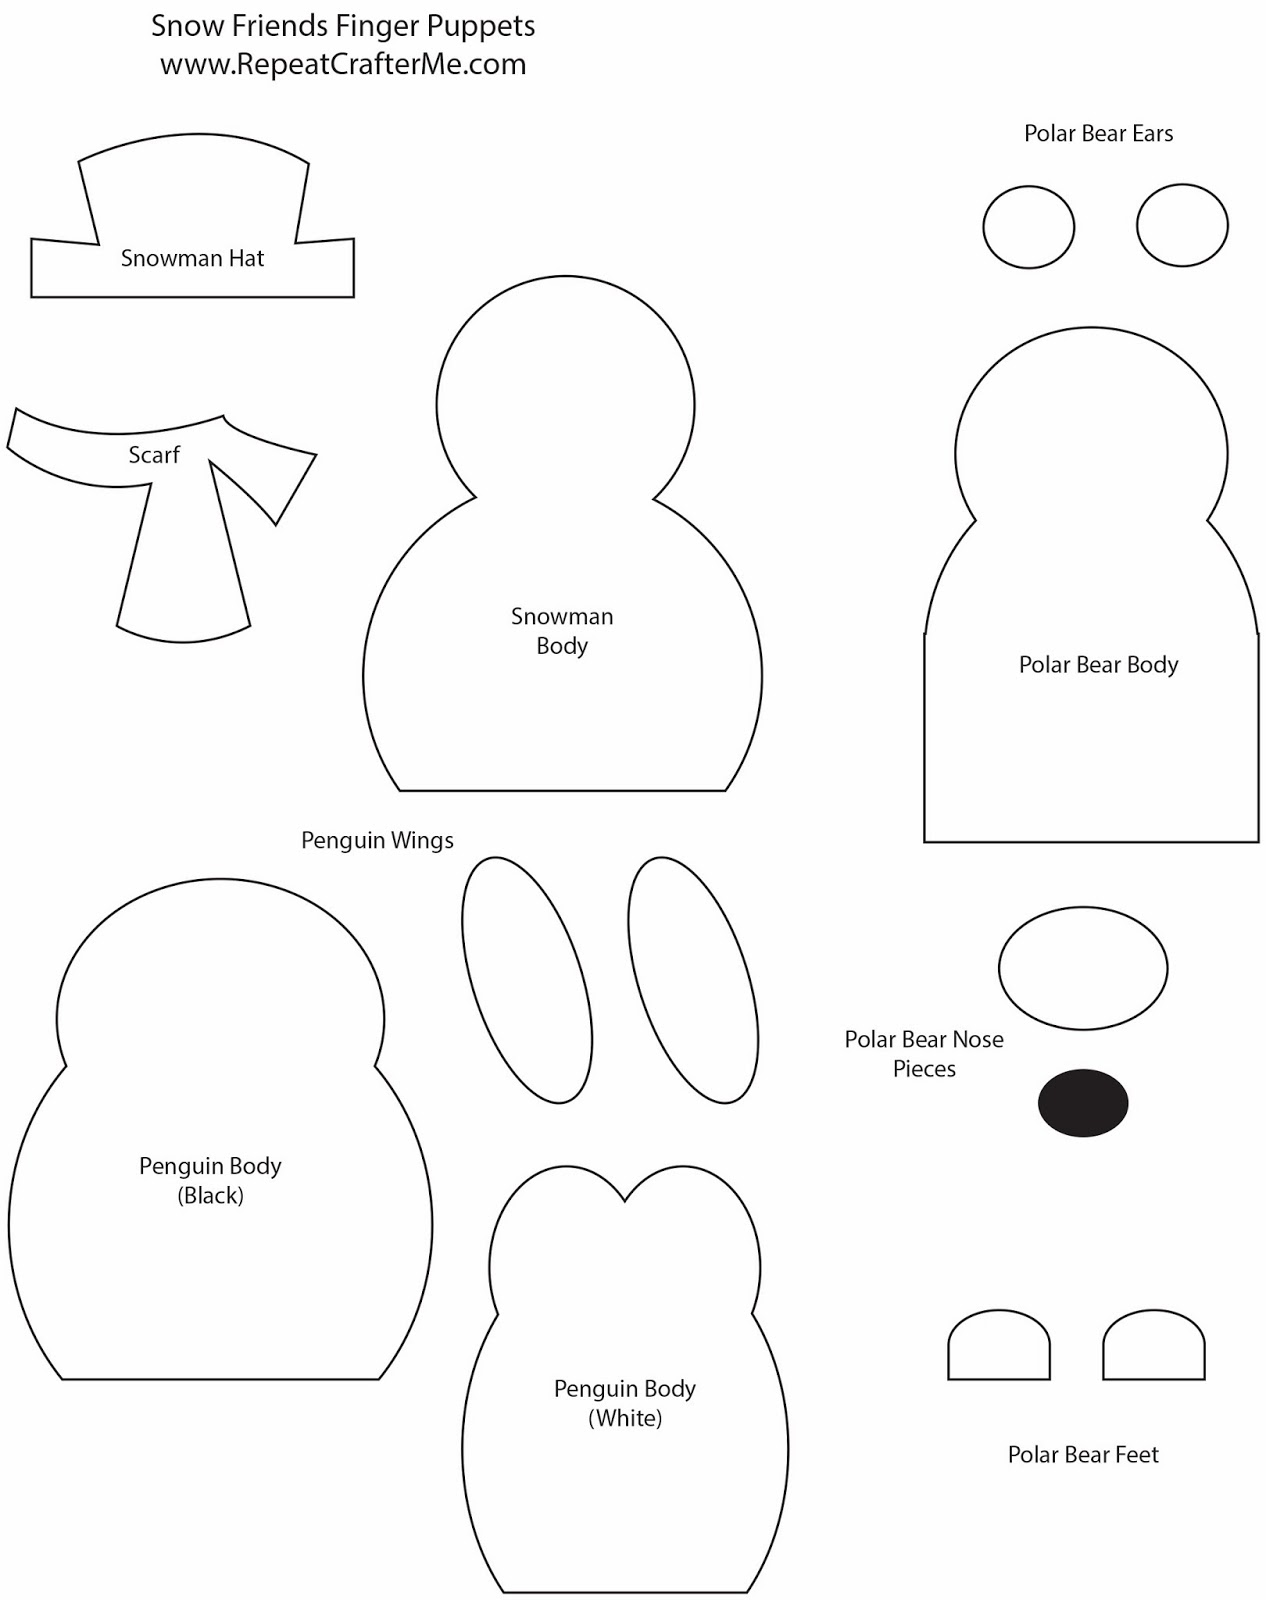 Snow friends finger puppets repeat crafter me for Paper finger puppets templates